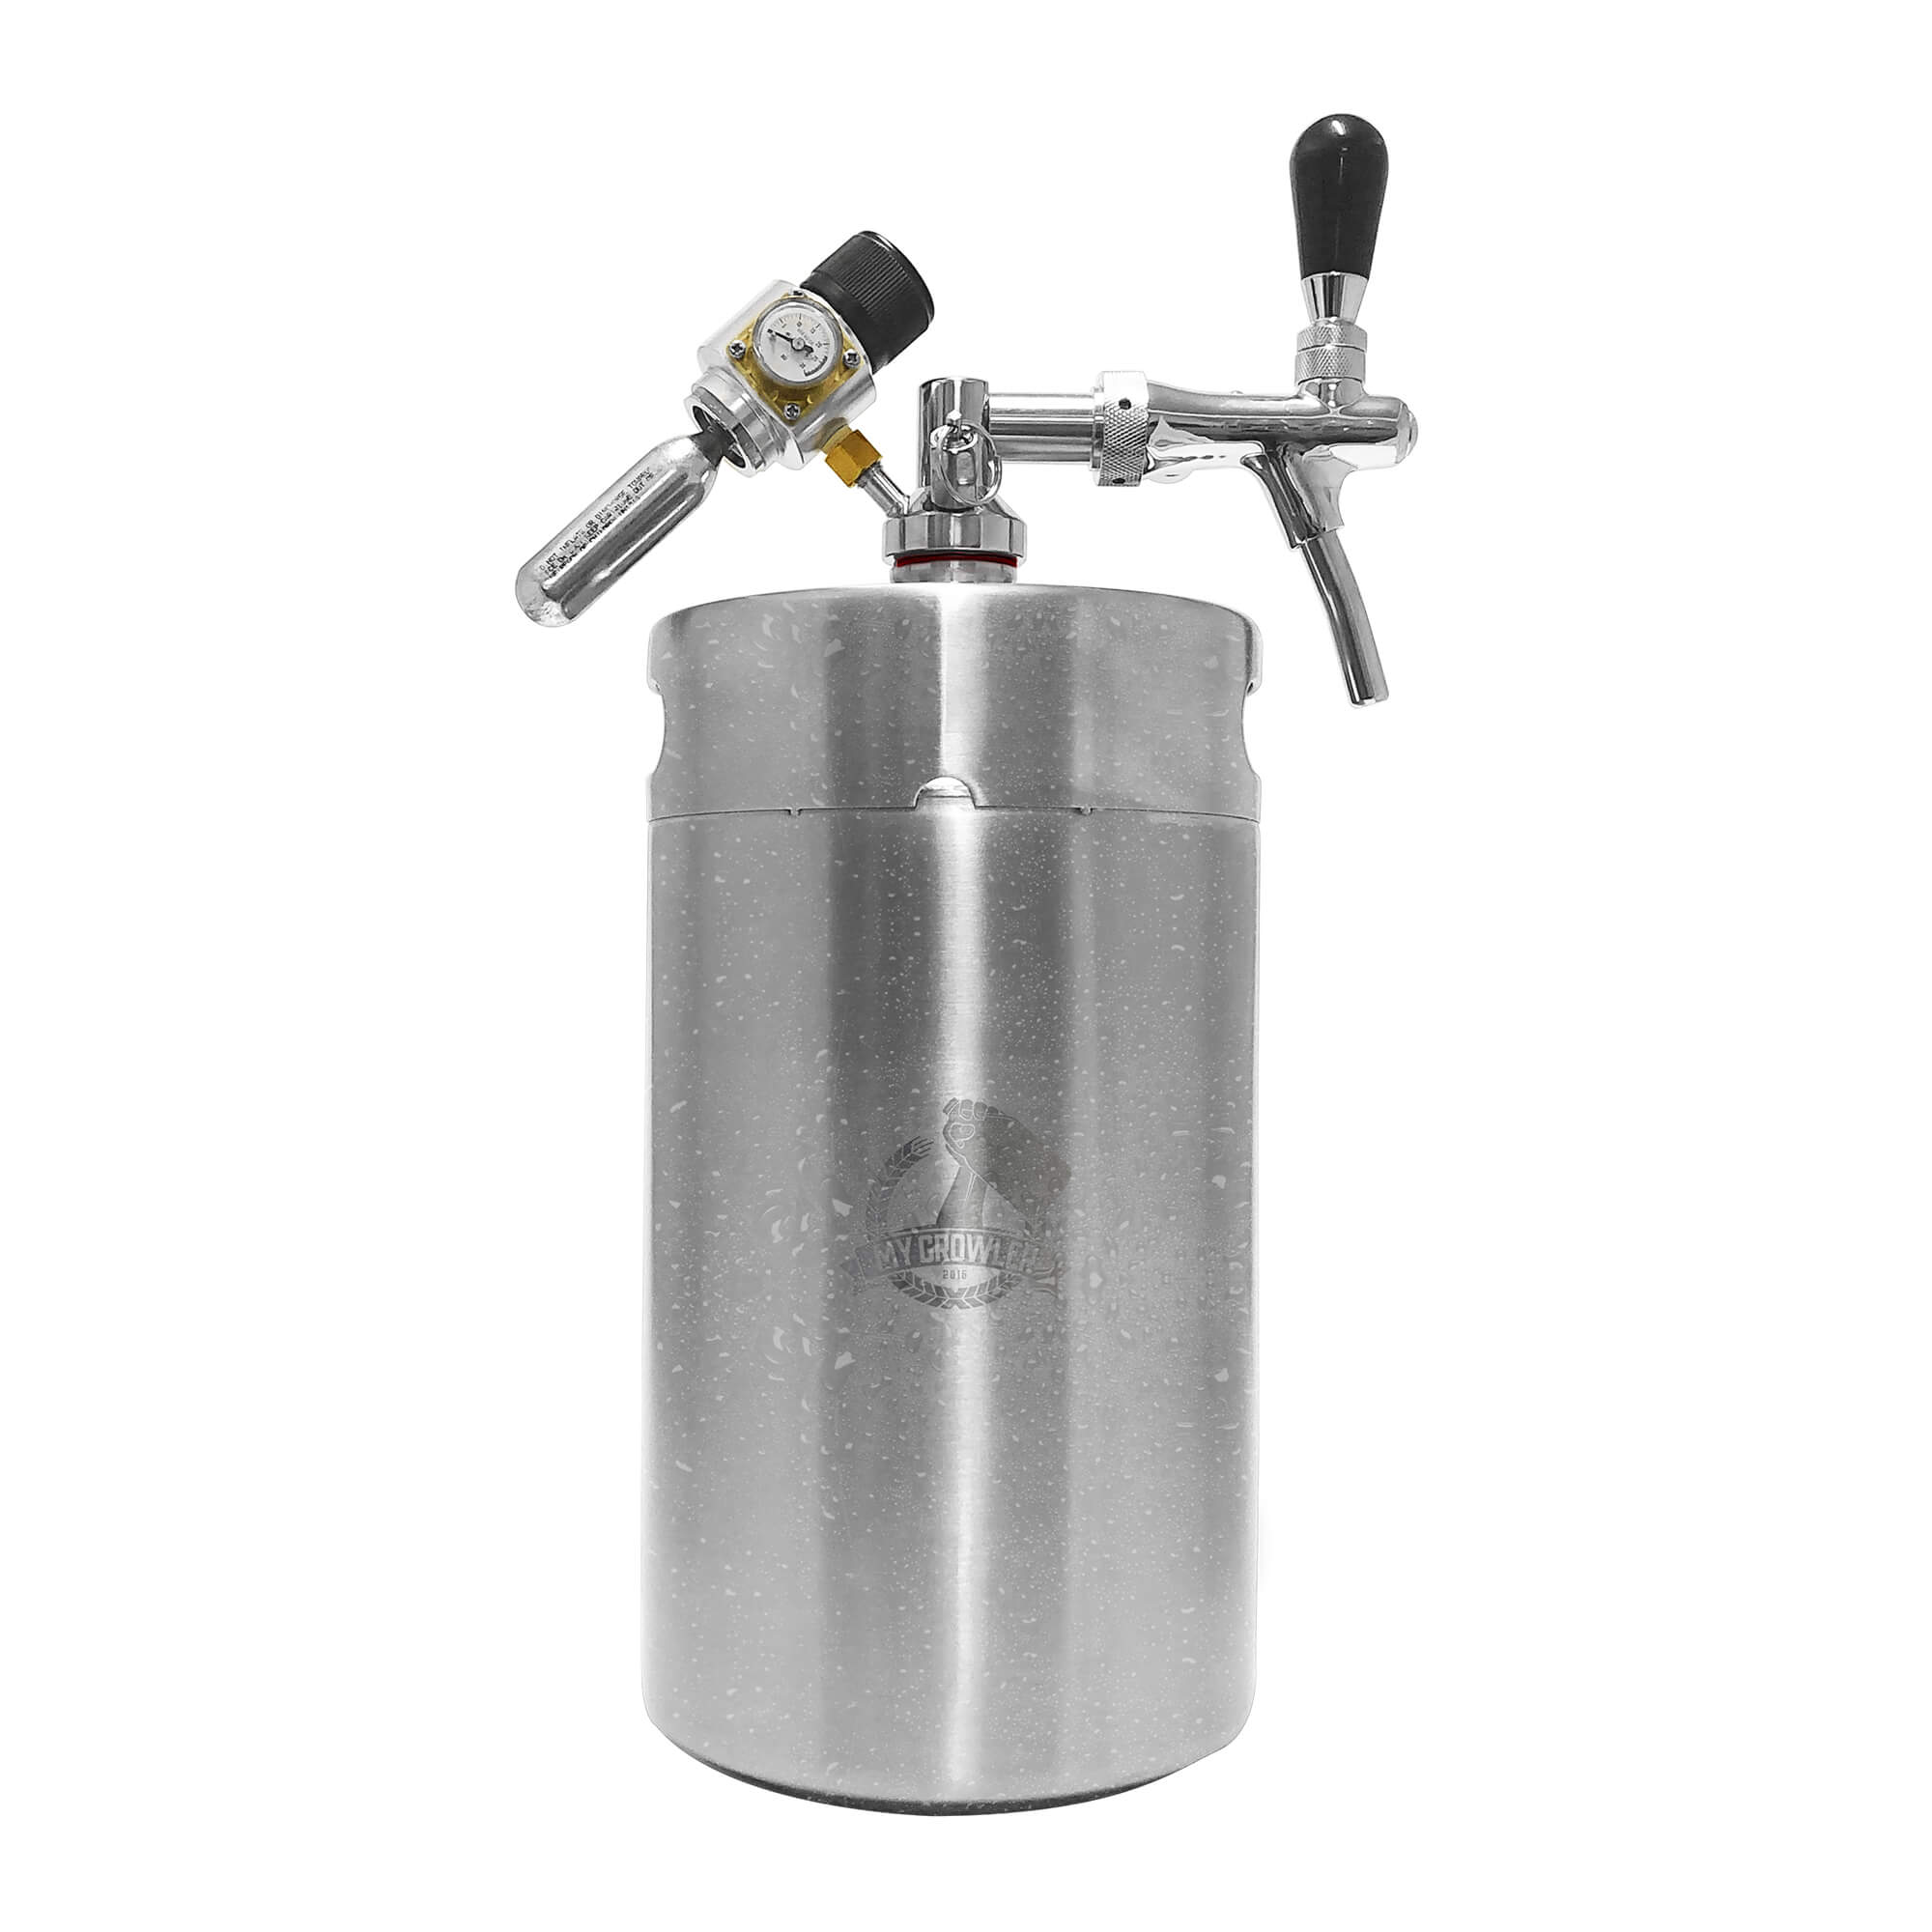 Kit My Keg, Growler Inox 8L com torneira italiana Premium